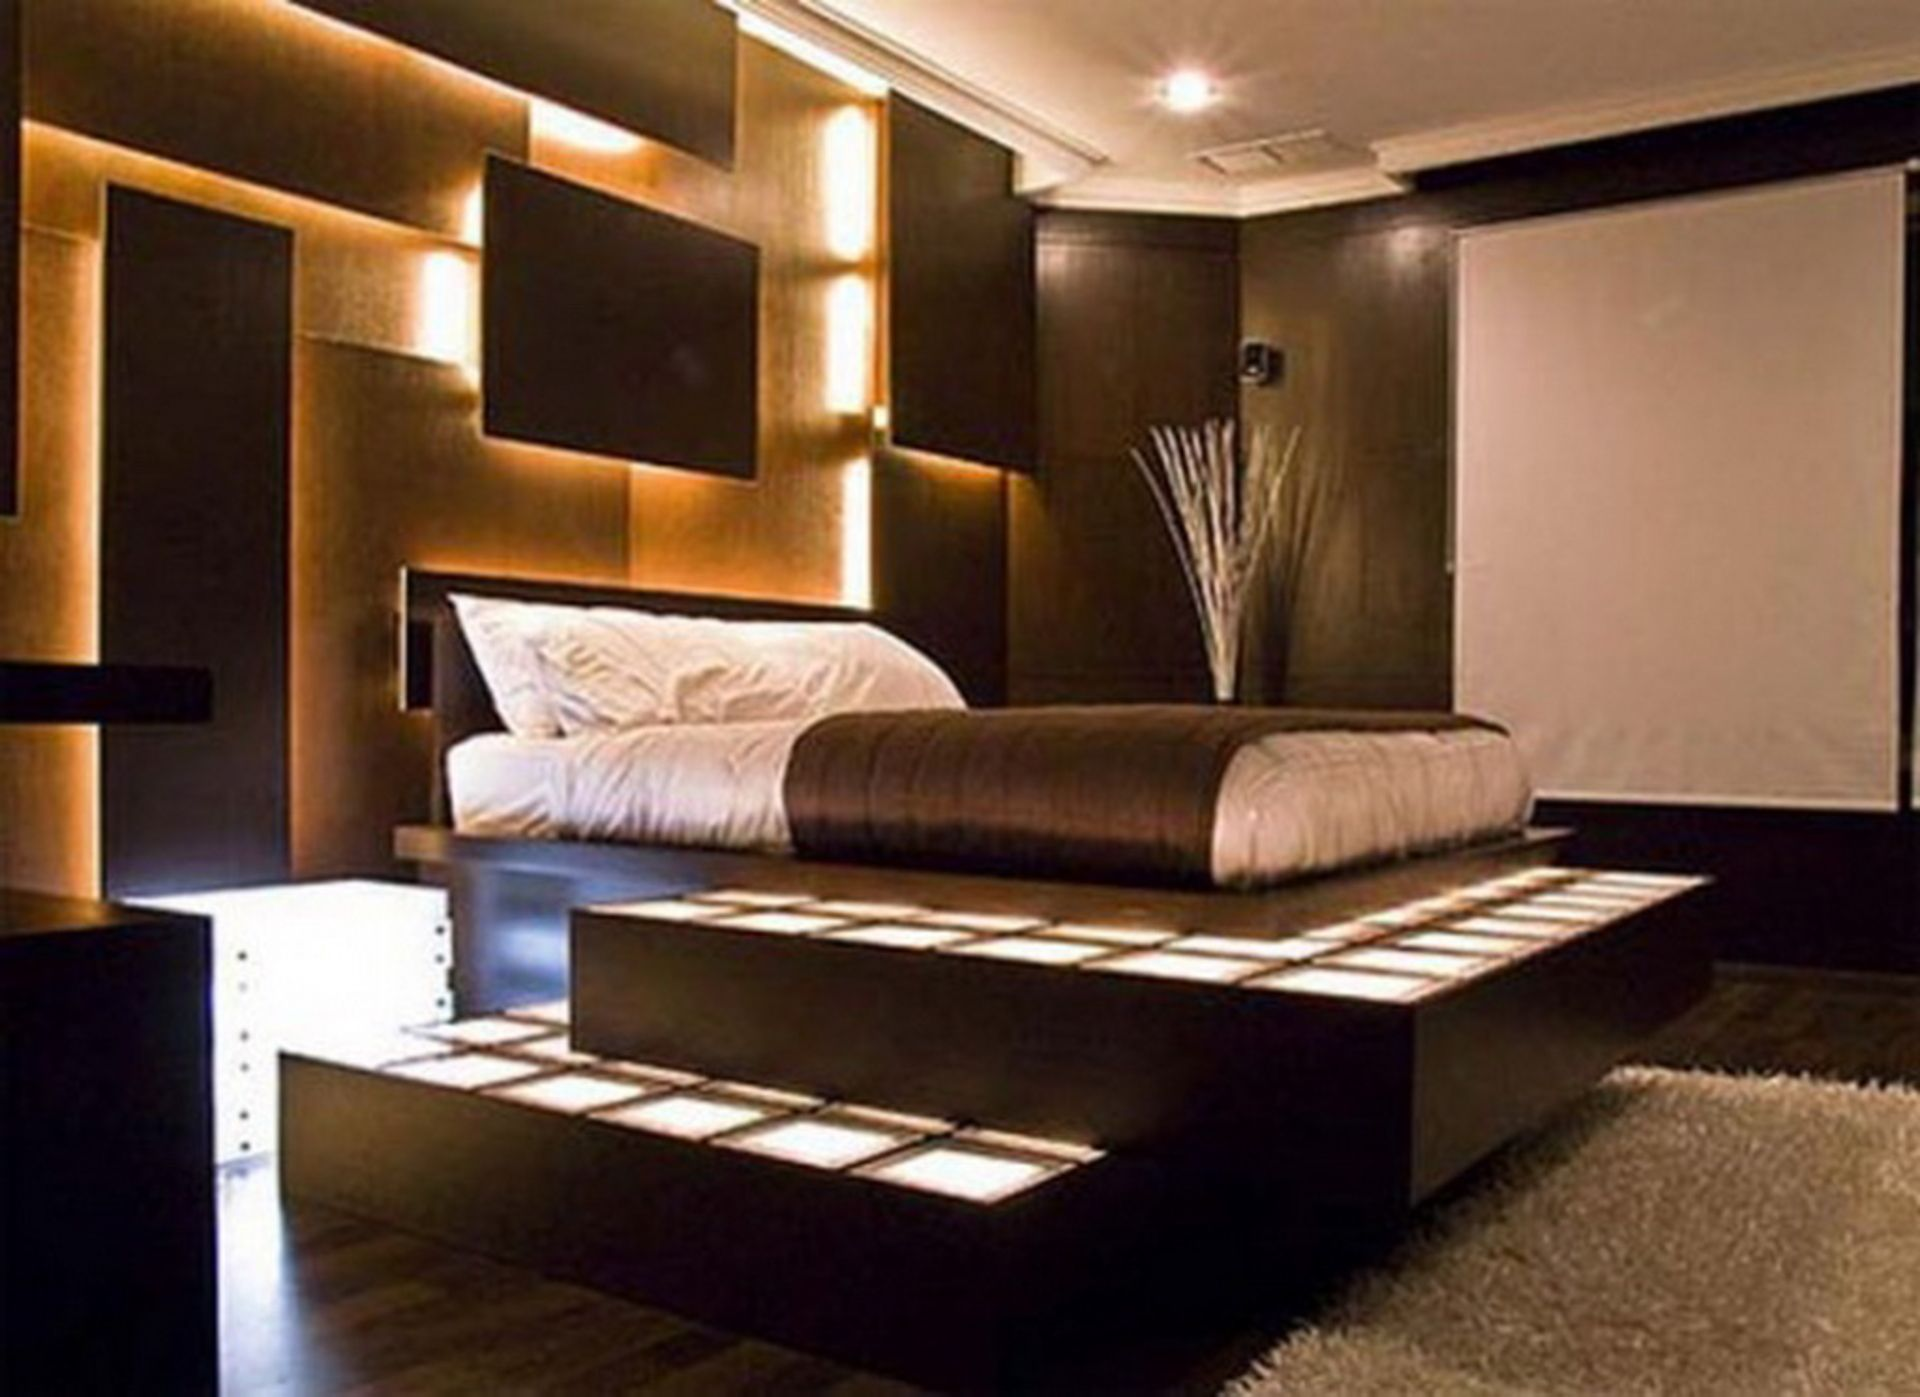 Bedroom Luxury White Vintage Headboard Bed With Elegant Side Entrancing Designer Bedrooms Images Design Decoration